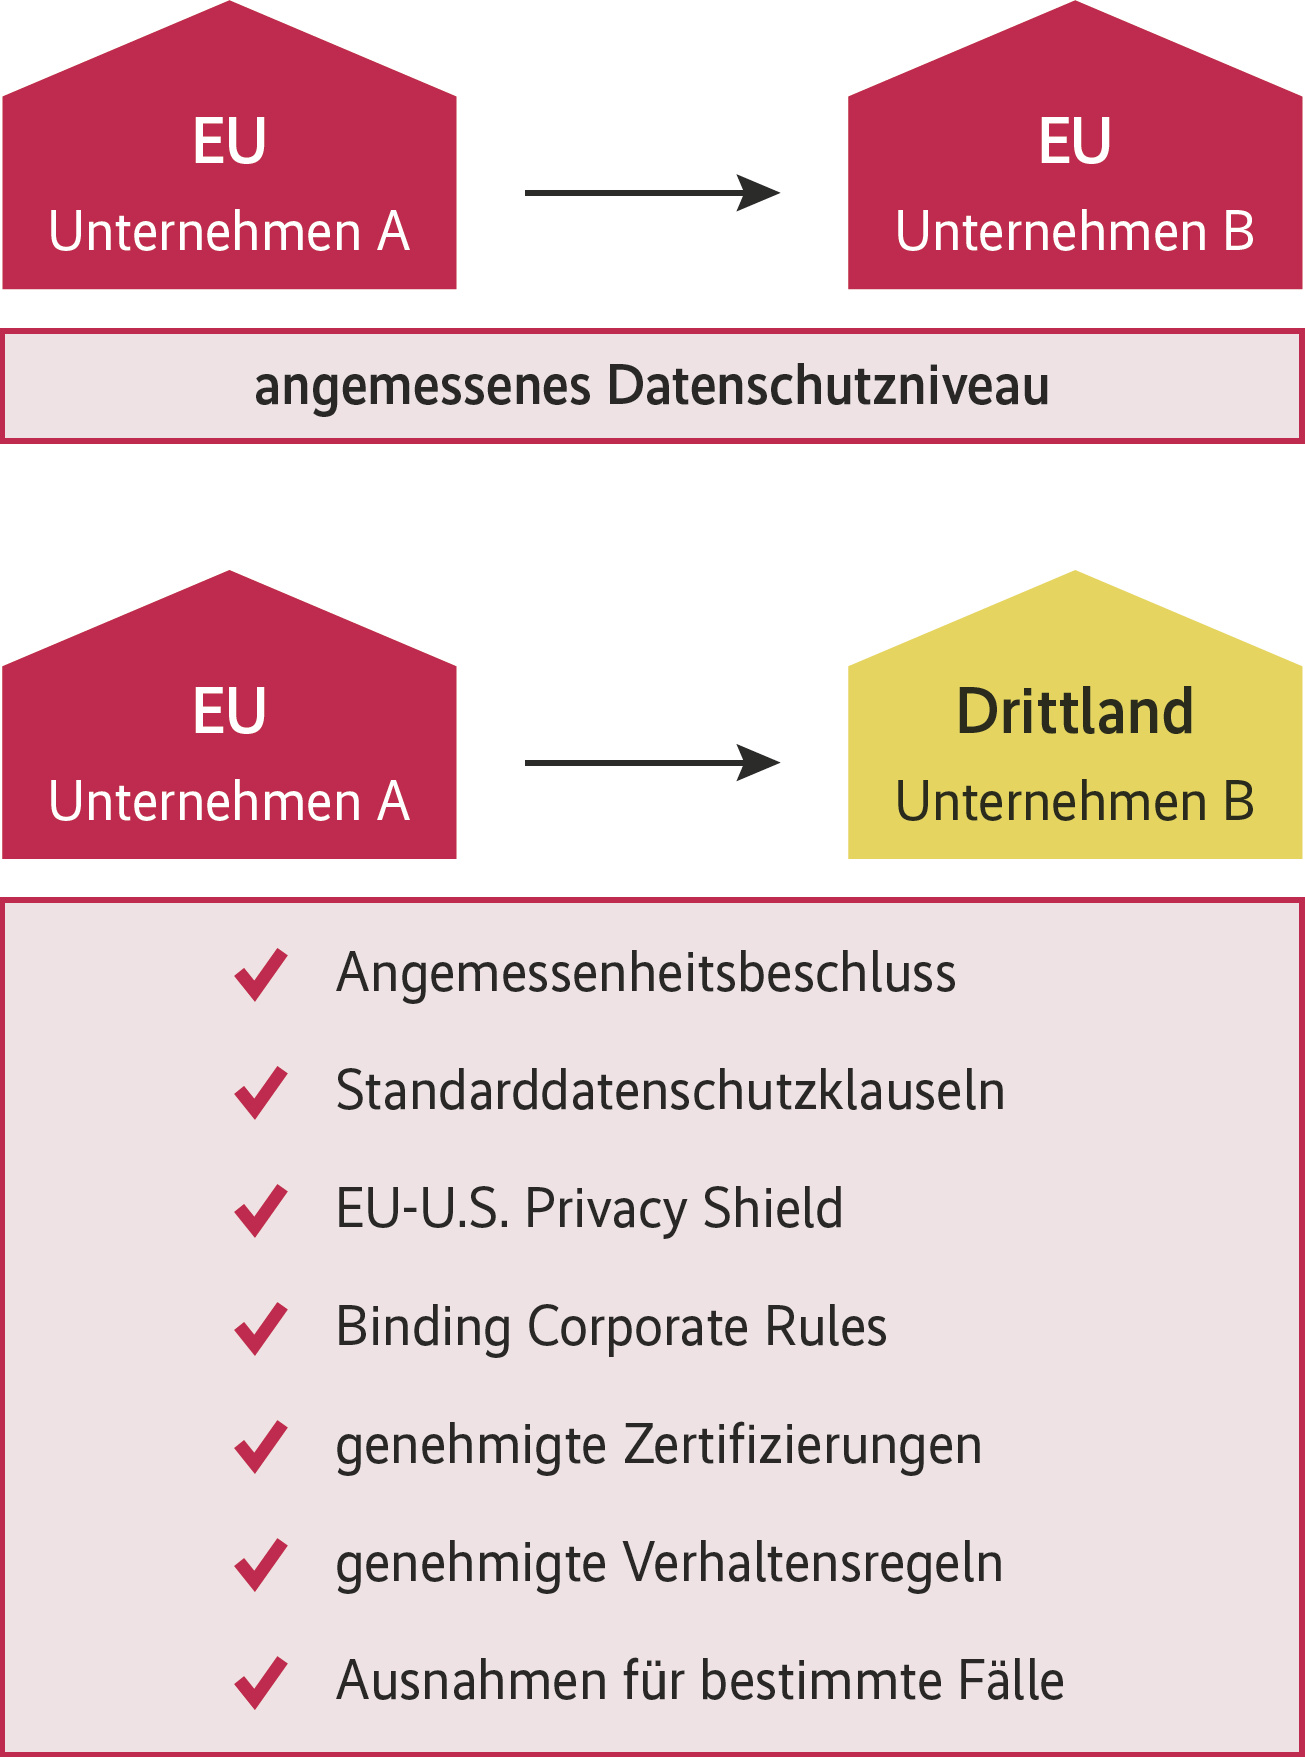 eu standardvertragsklauseln